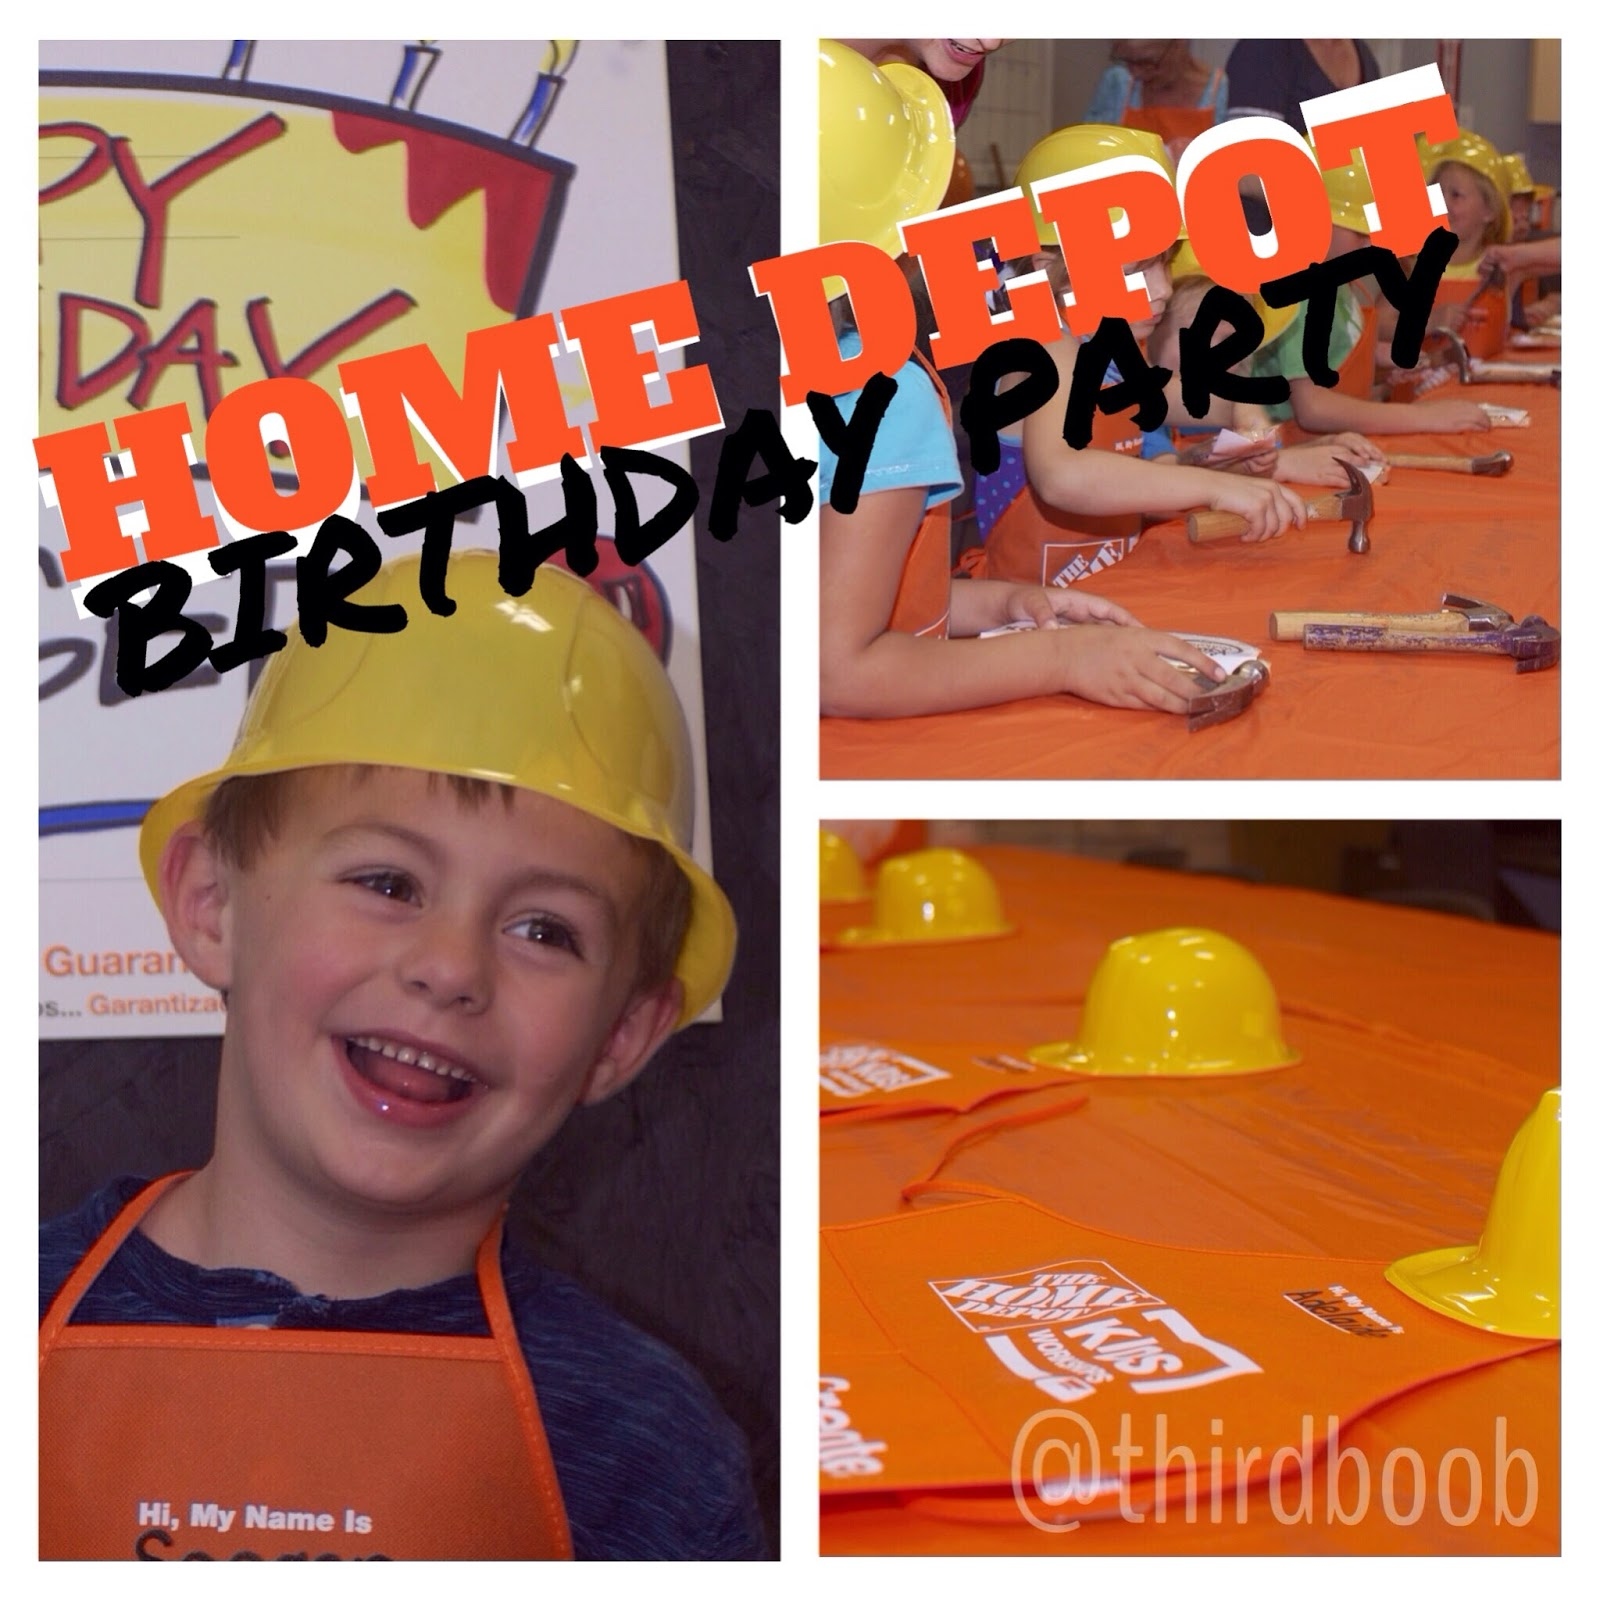 The Third Boob Celebration Home Depot Birthday Party